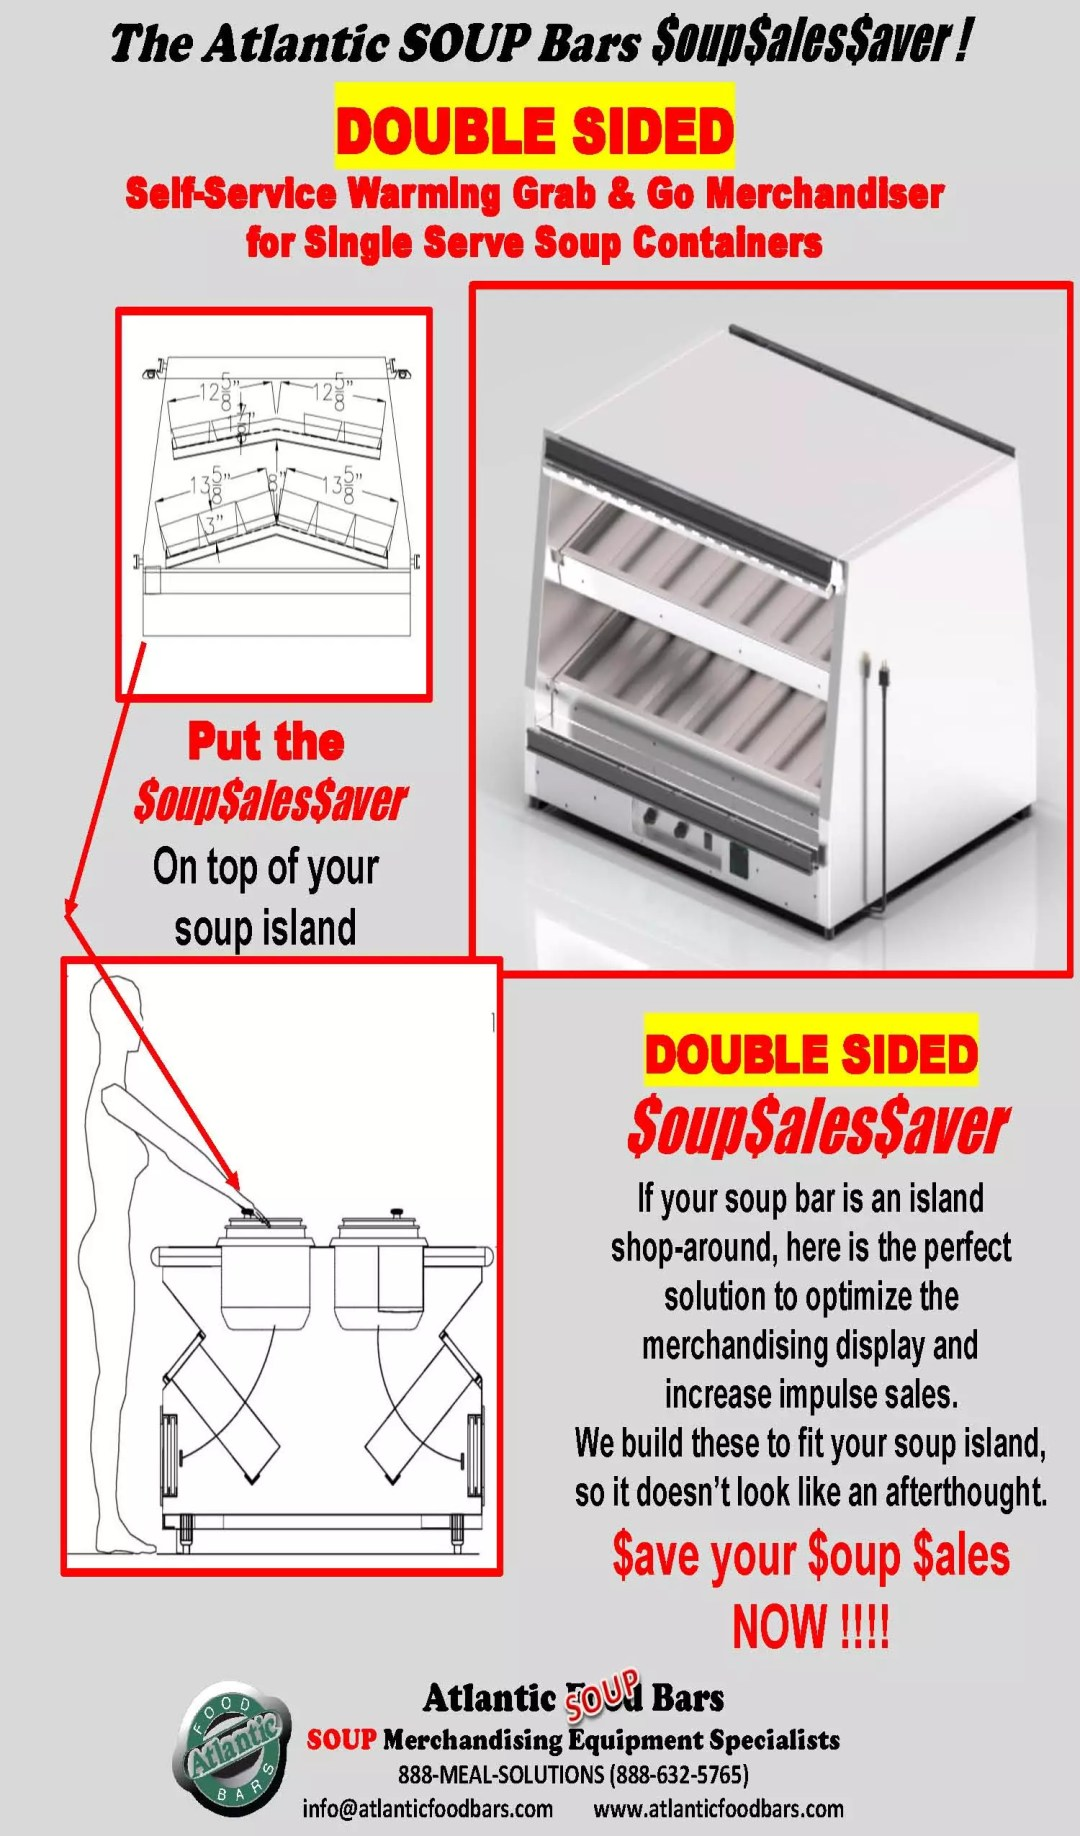 Before and After - CSB Series Hot Soup Saver for Conversion to Grab and Go Soup Merchandising Presentation for SOUP MANUFACTURERS 12-5-20_Page_4